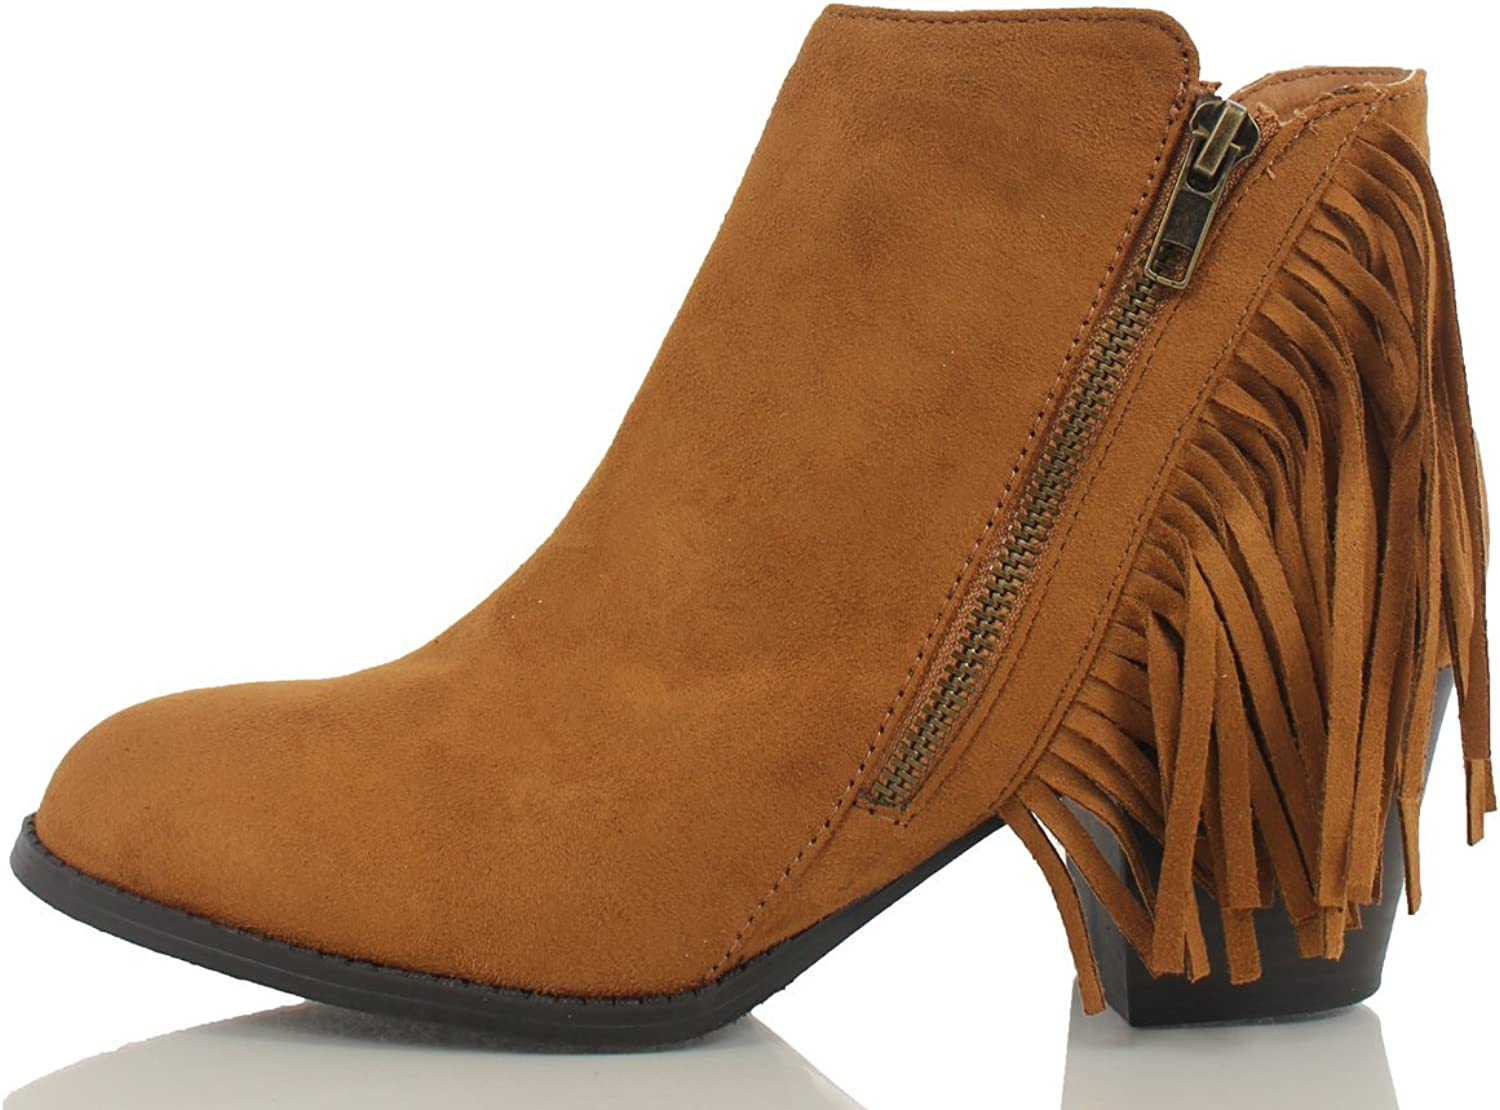 Soda Women's Noriko Faux Suede Fringe Moccasin Ankle Boot,British Tan,8.5